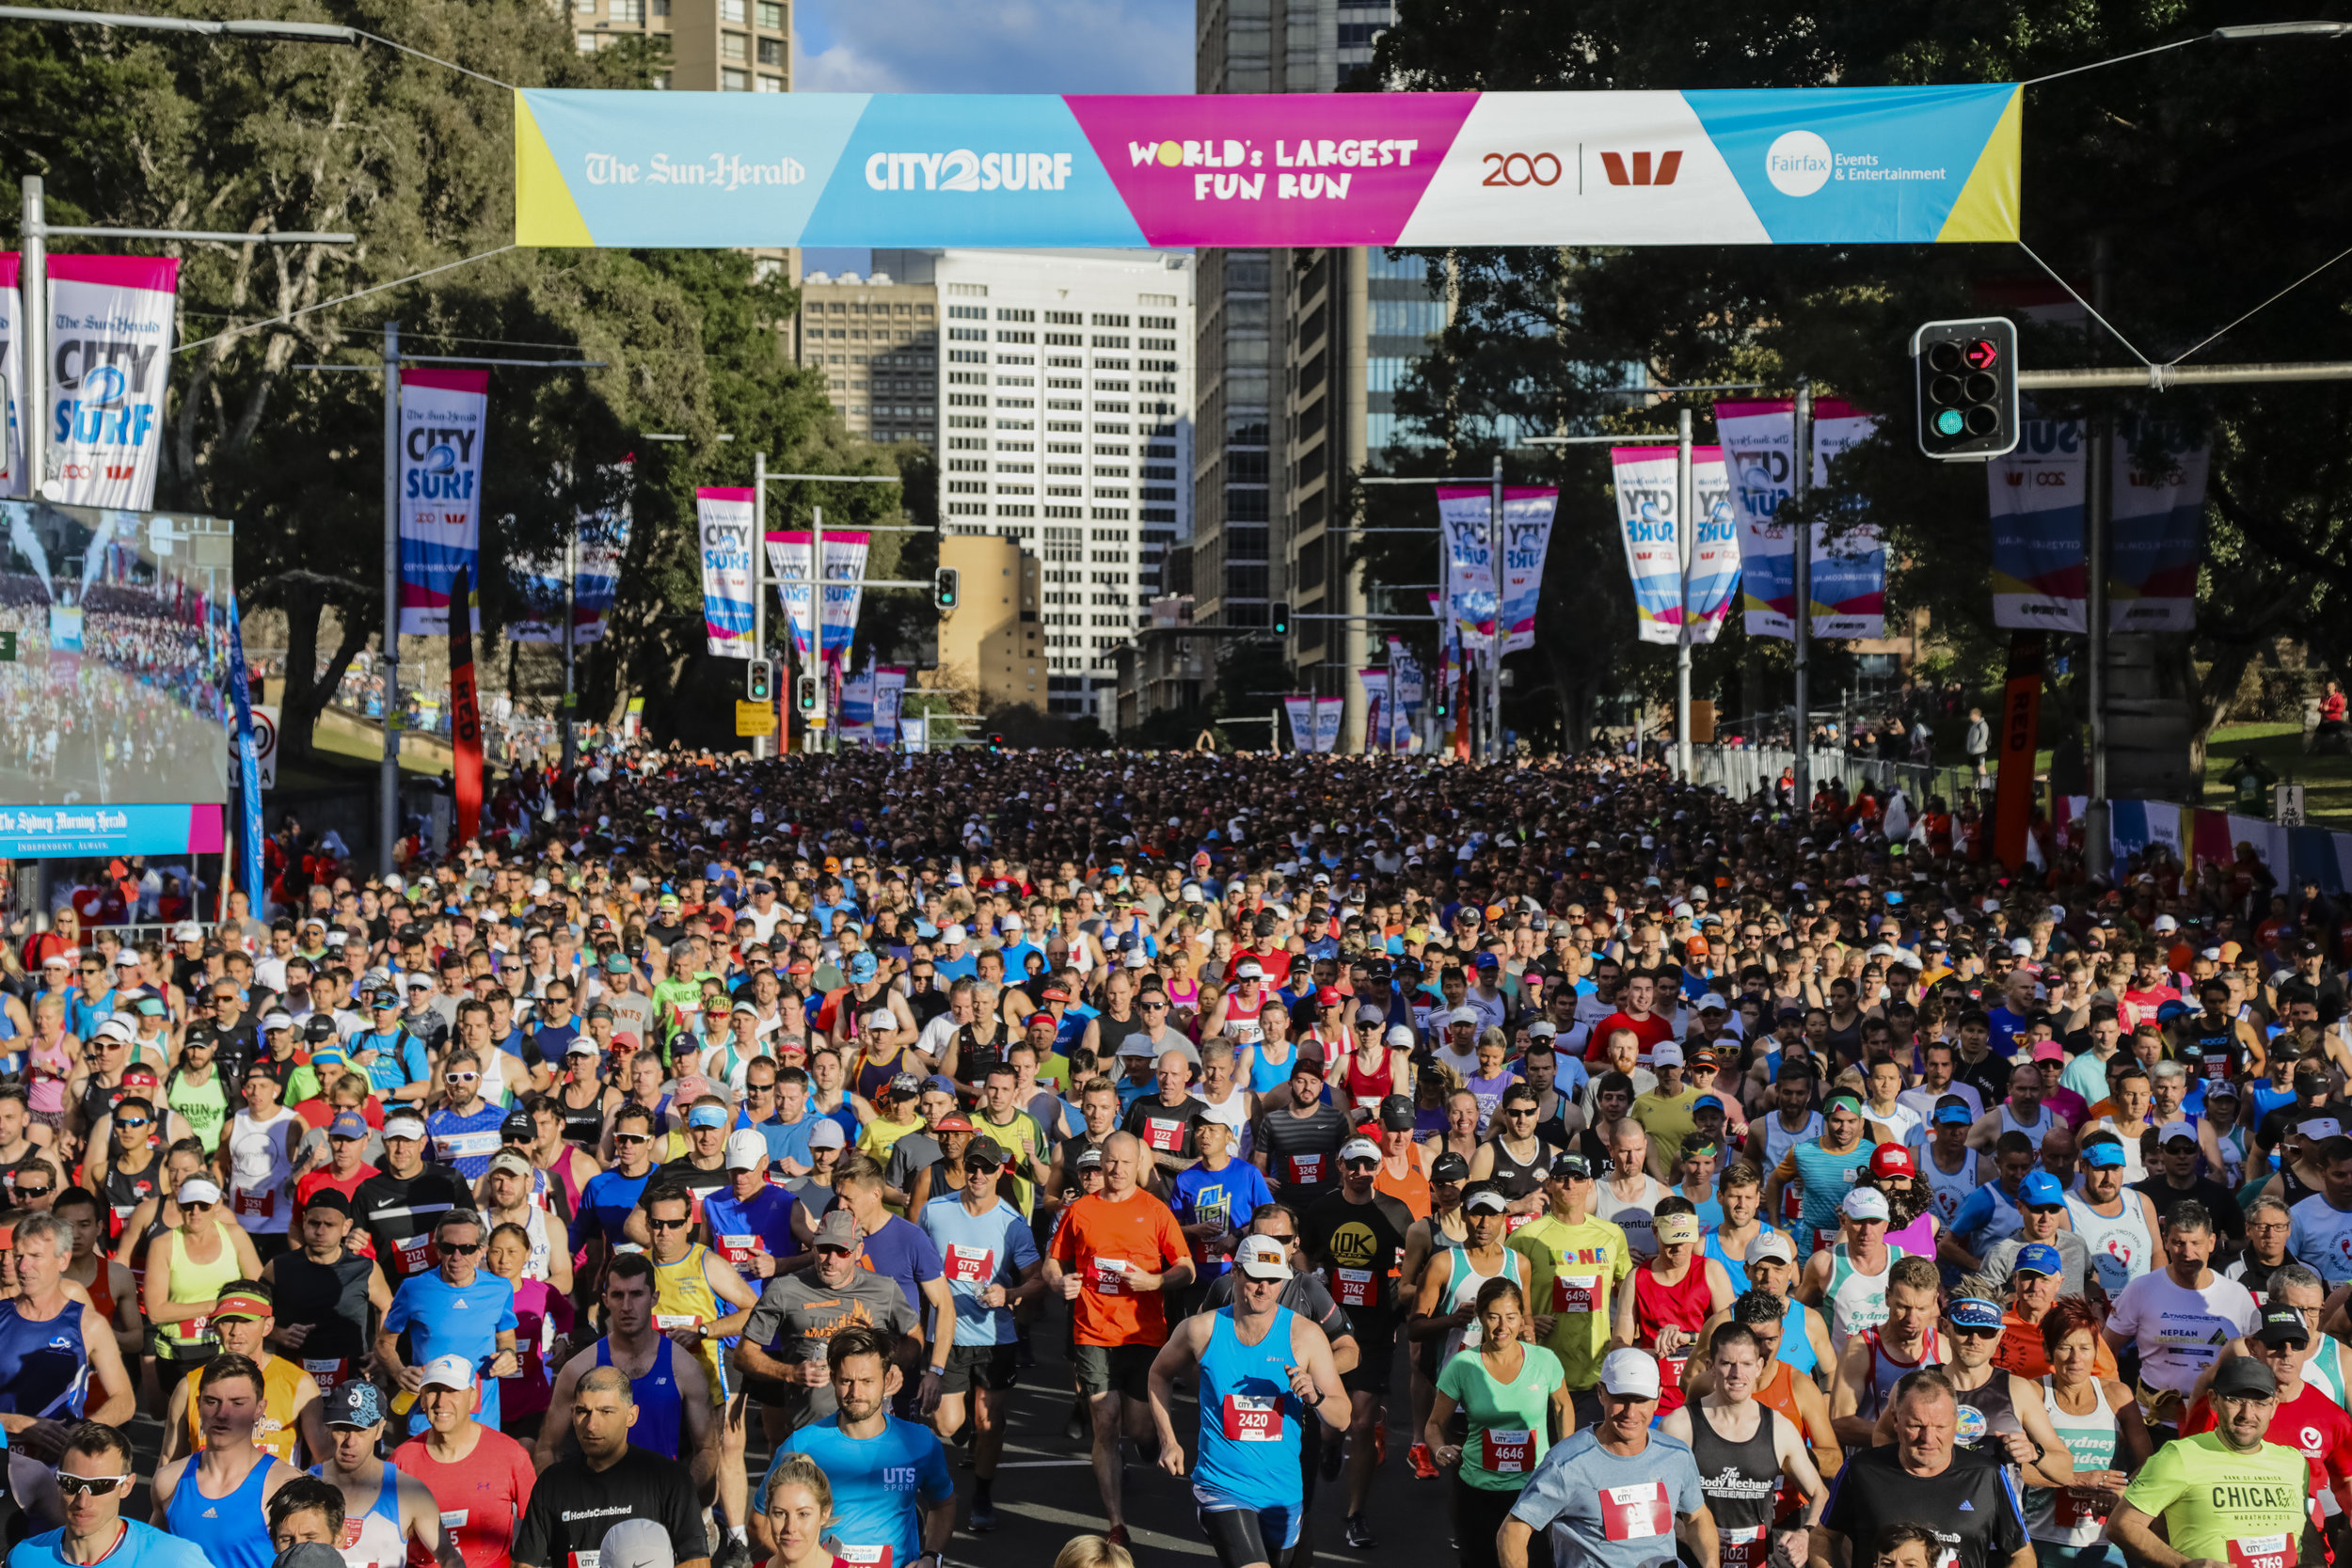 2018 Start Line at  The Sun-Herald  City2Surf presented by Westpac